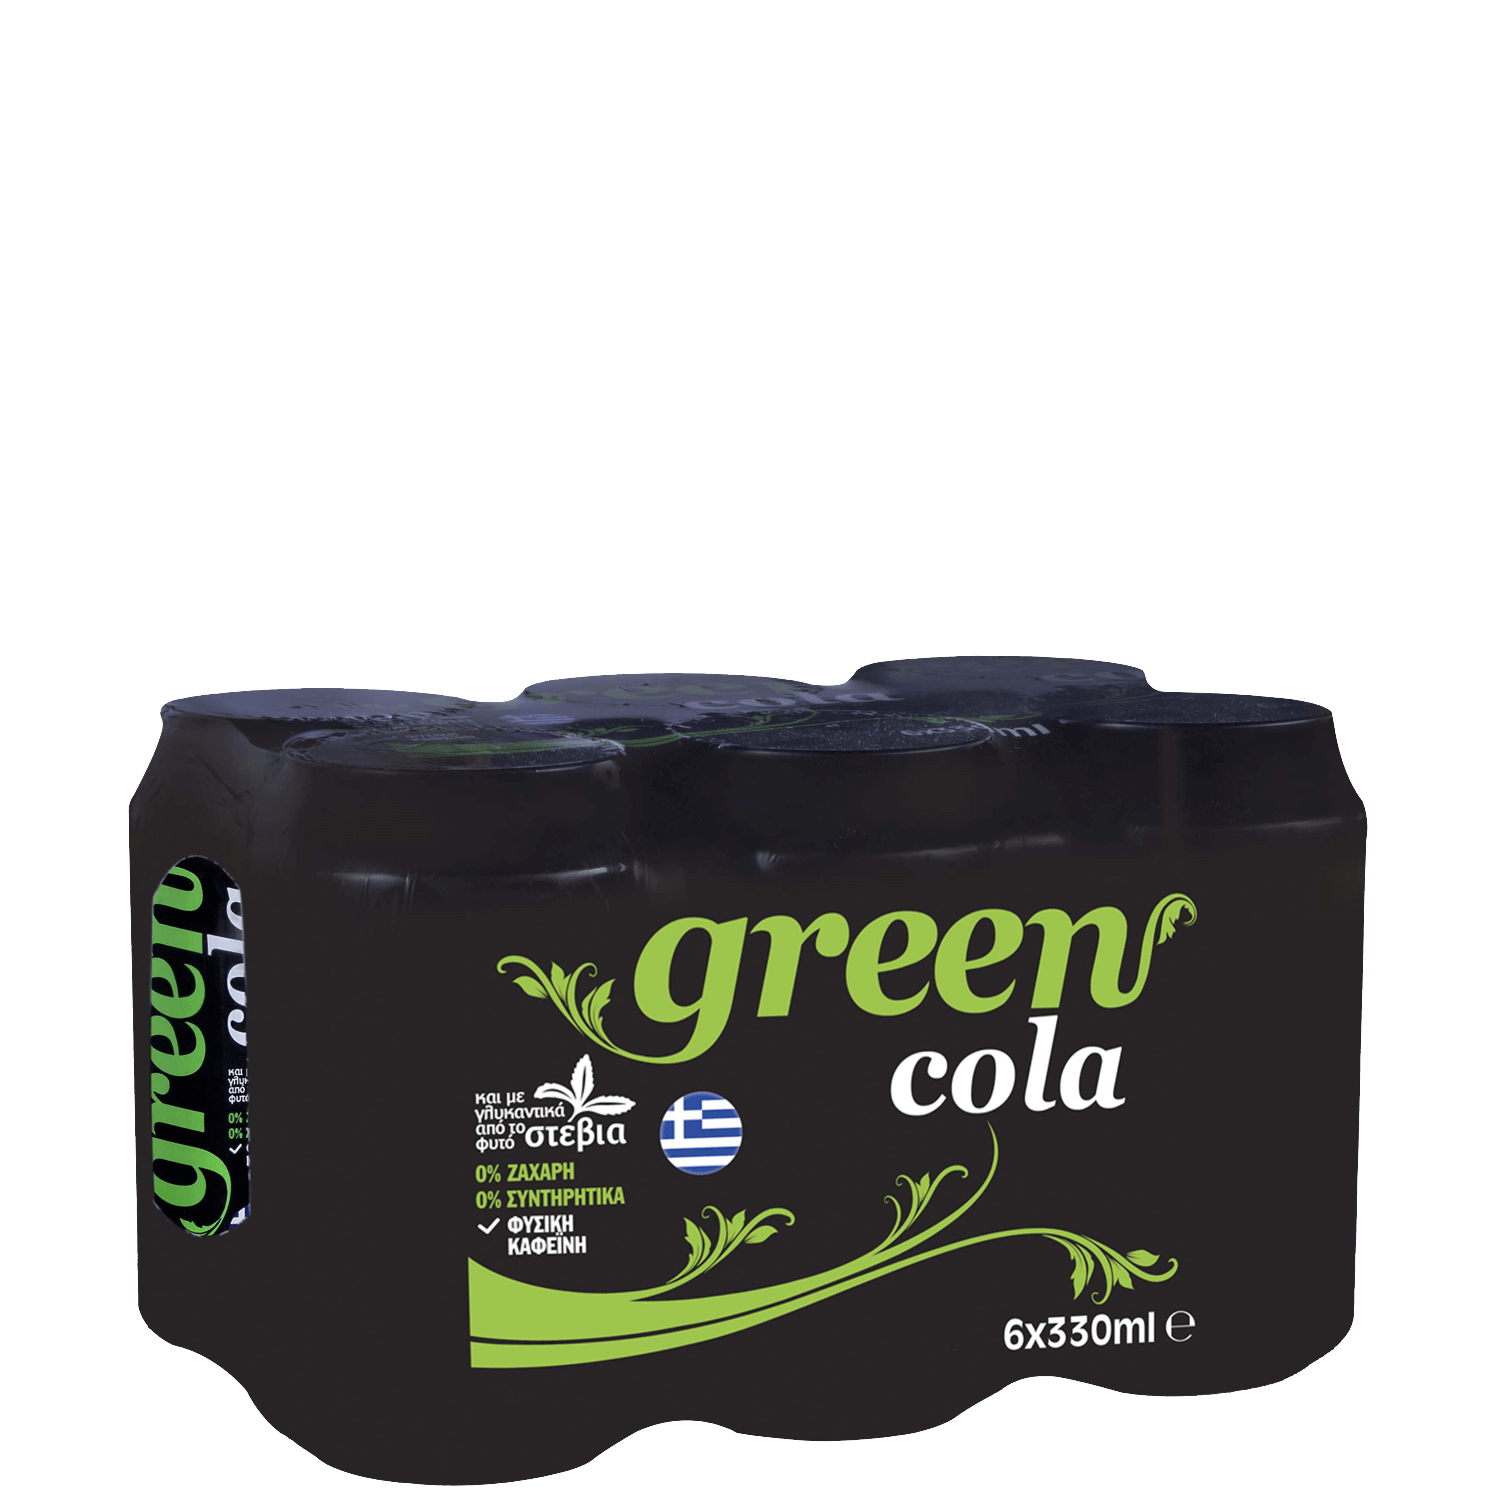 Green Cola - Multi-pack - (6x330ml cans)